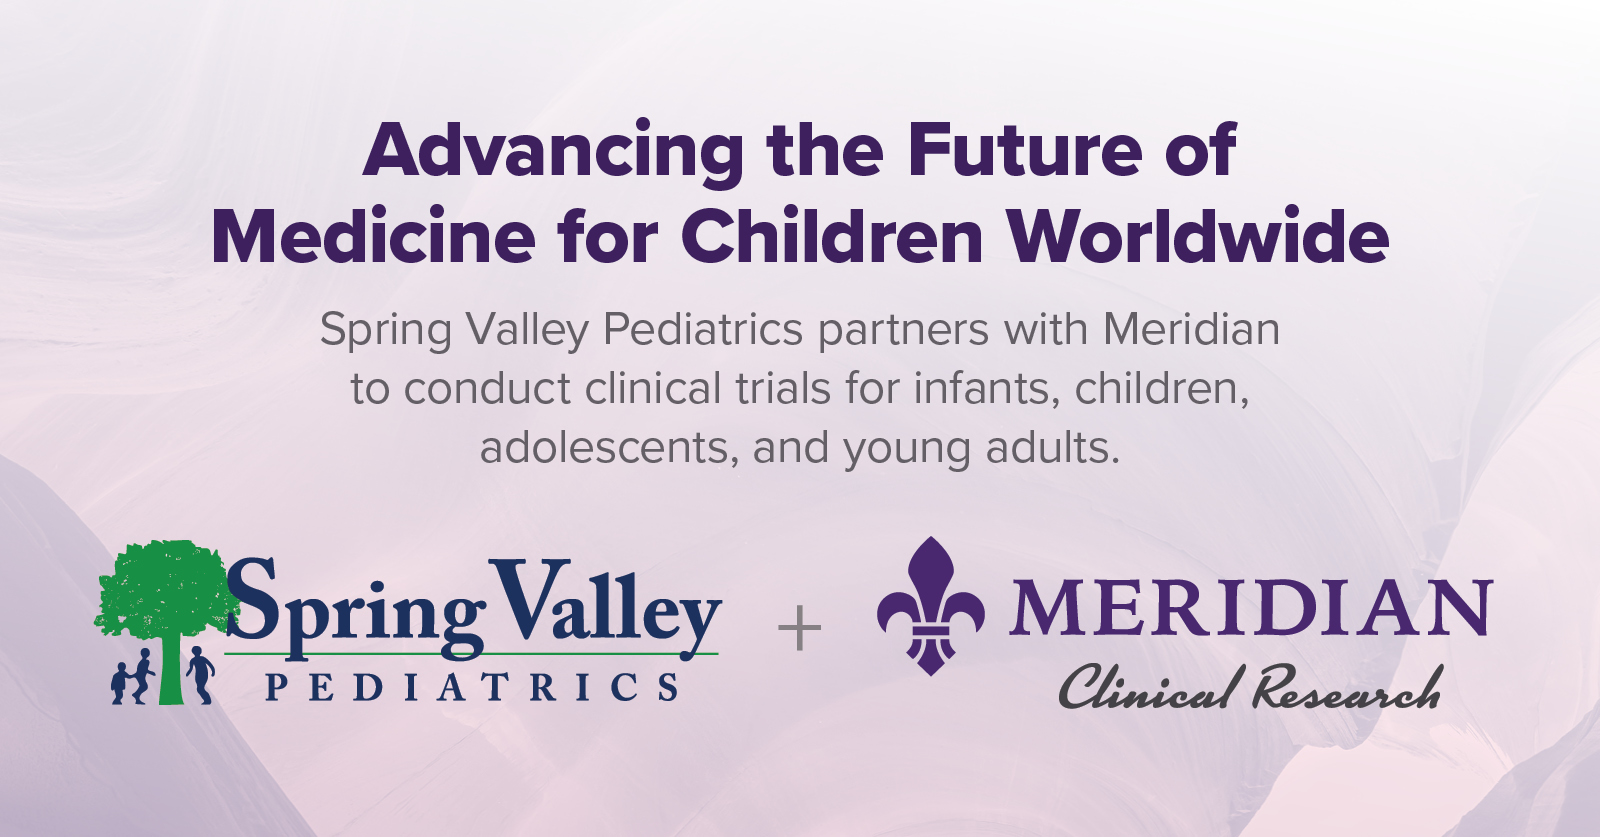 Spring Valley Pediatrics and Meridian are Partnering in Washington, DC